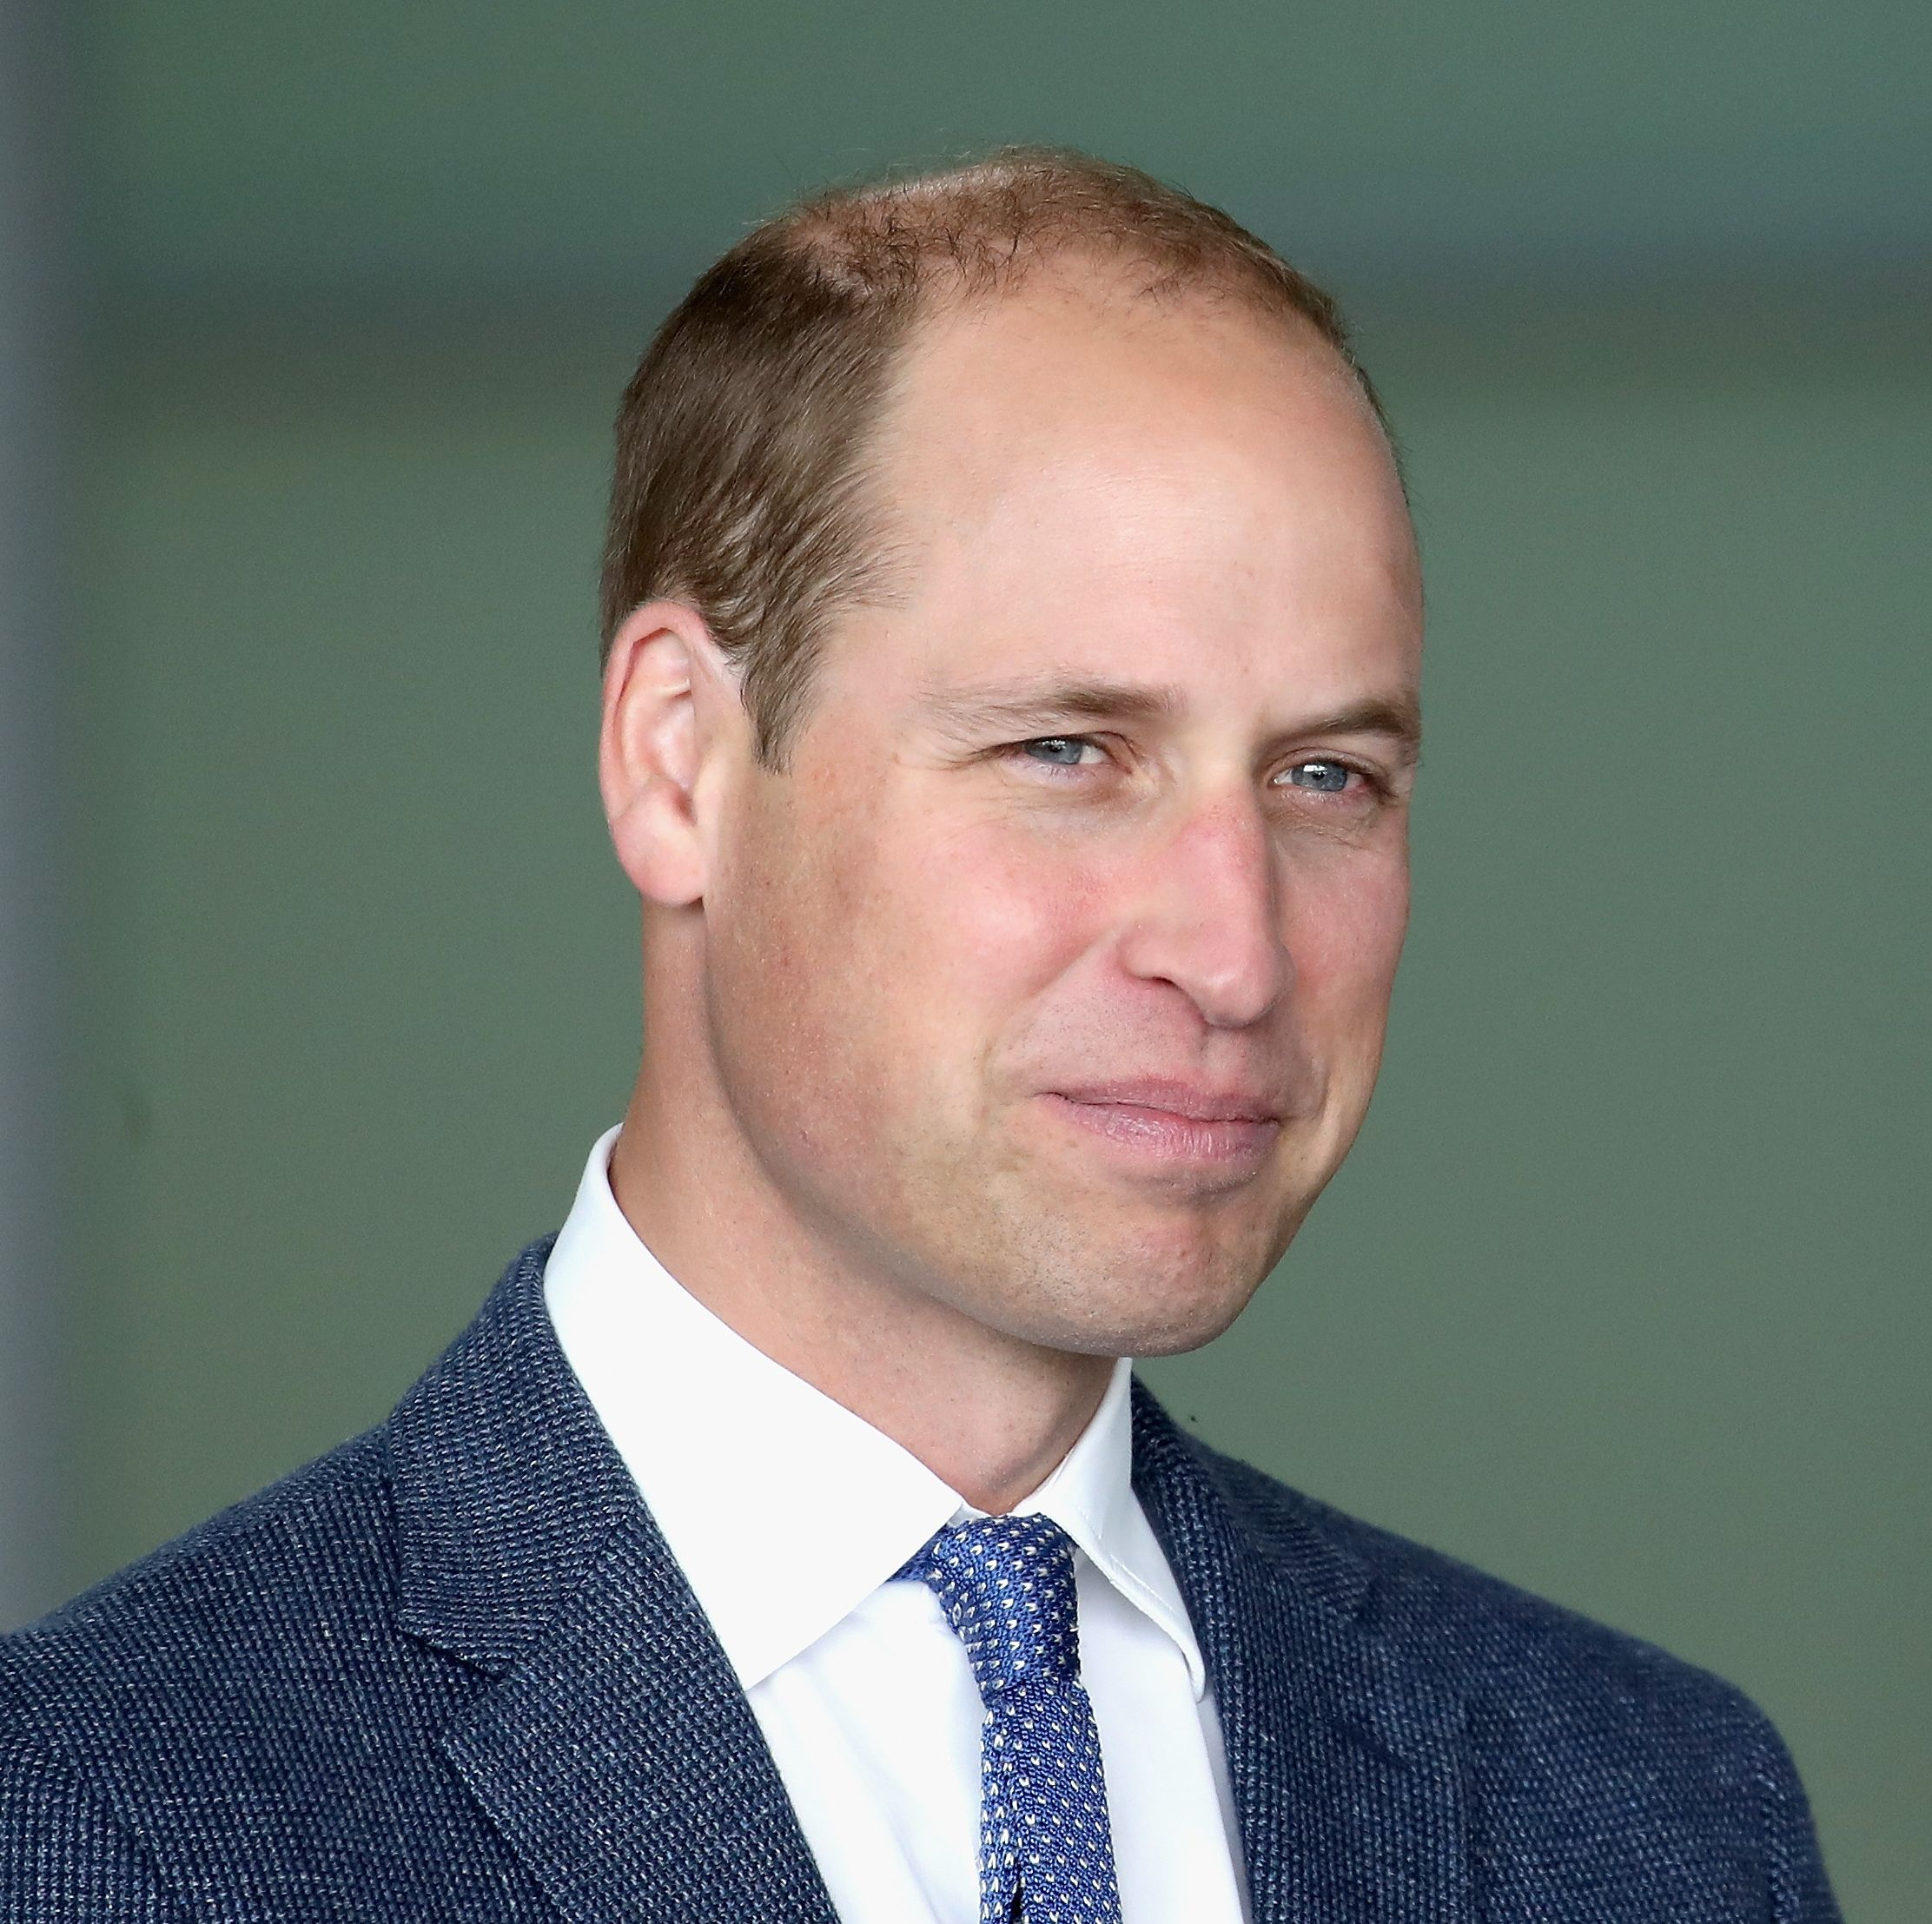 Prince William Reveals How Princess Diana's Death Impacted His Mental Health